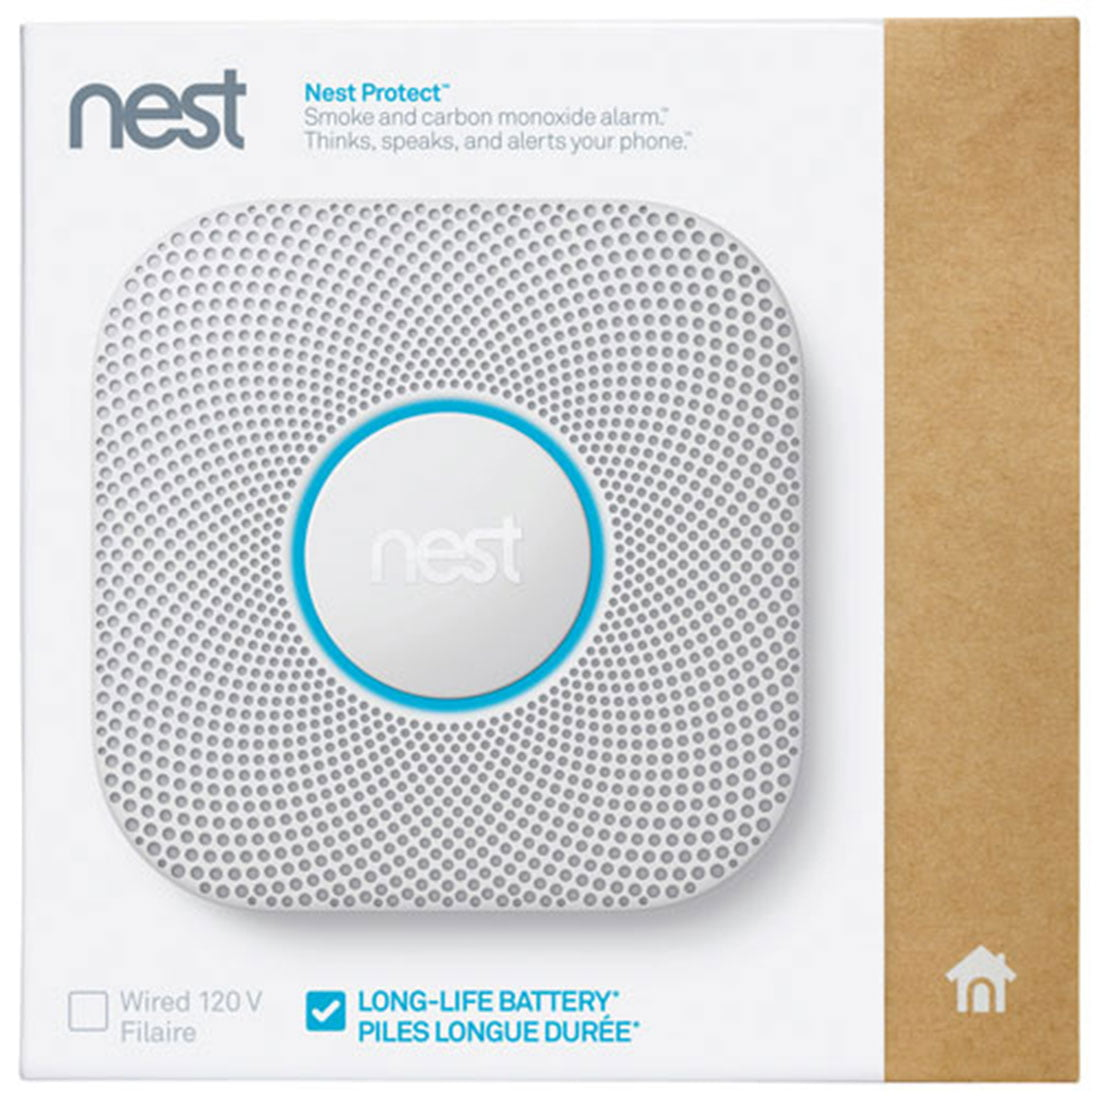 how to connect nest protect to wifi